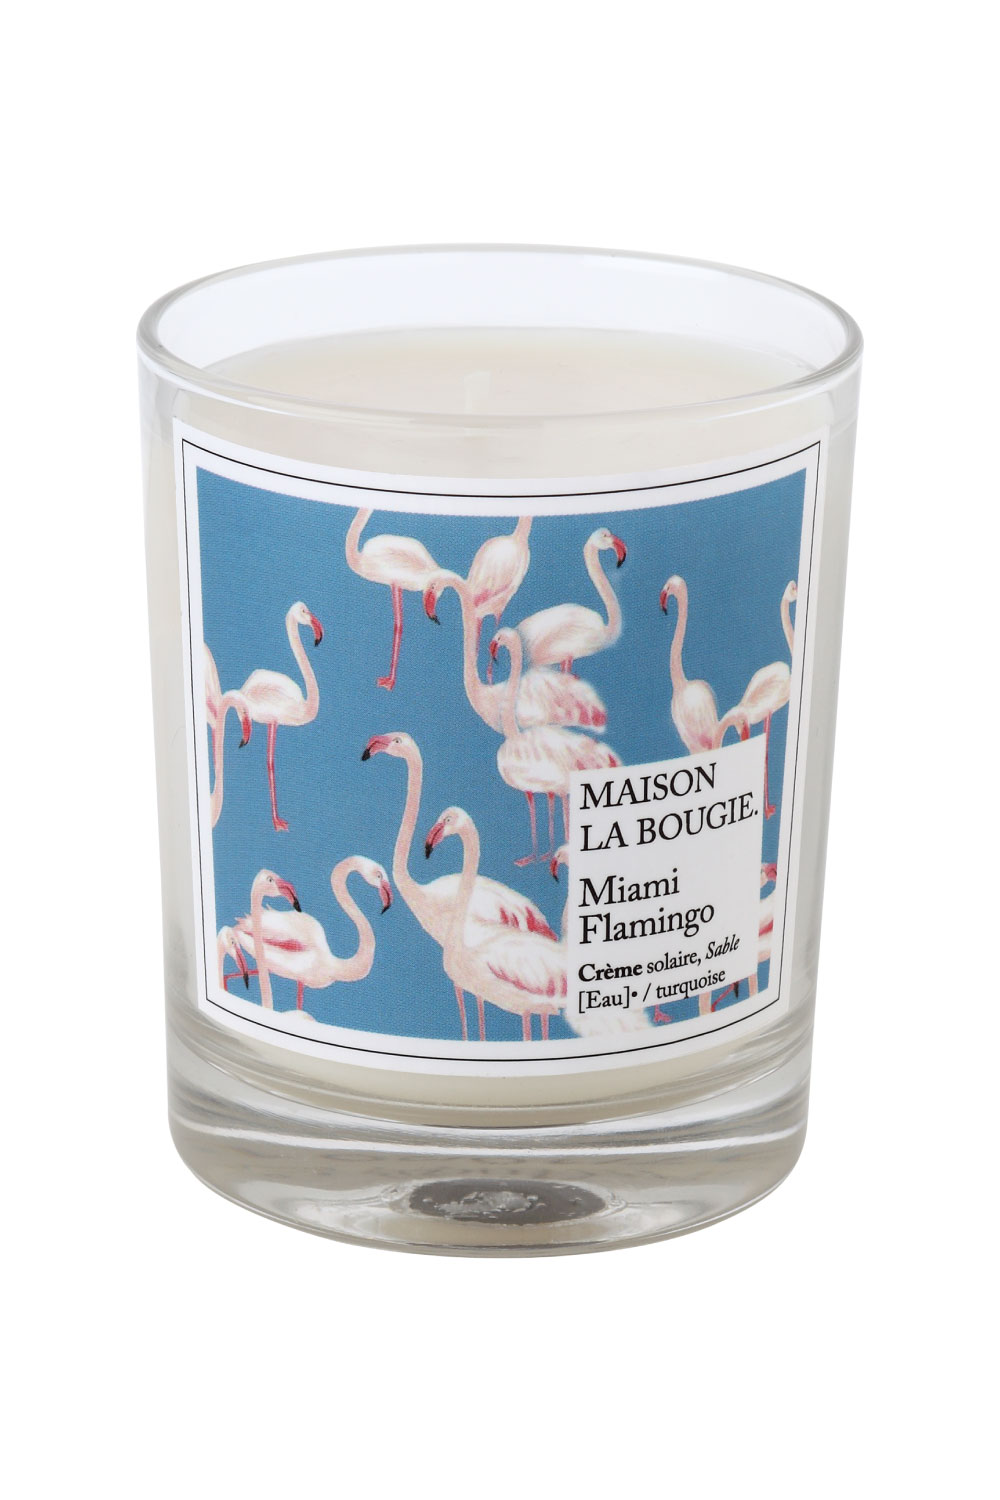 bougie parfum e miami flamingo maison la bougie sous les pav s la plage. Black Bedroom Furniture Sets. Home Design Ideas